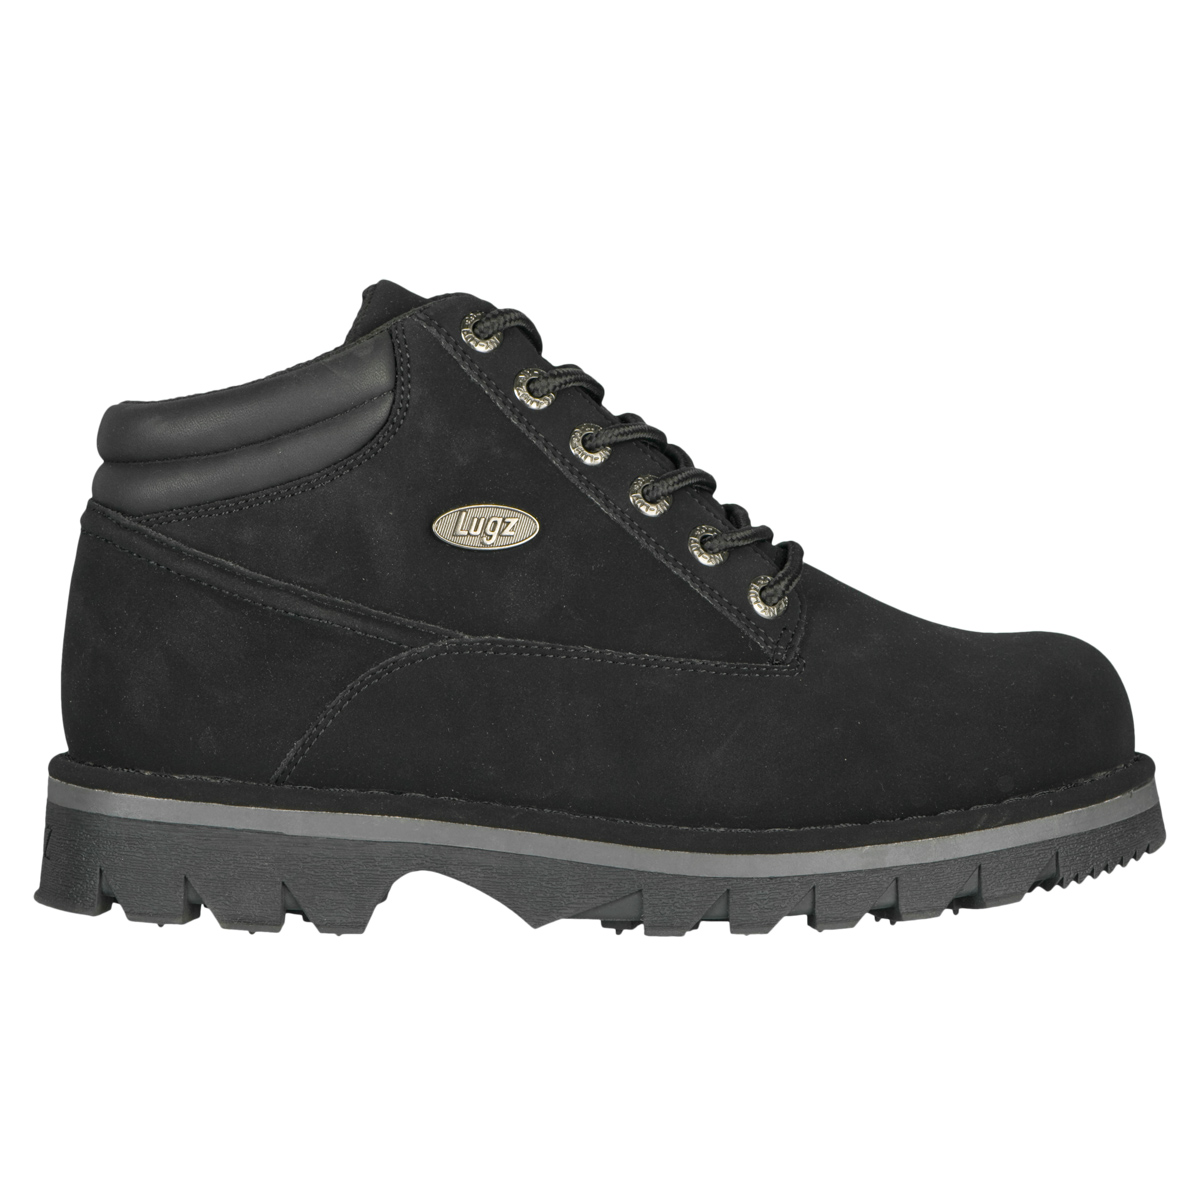 lugz ii mens boot black charcoal stylish footwear